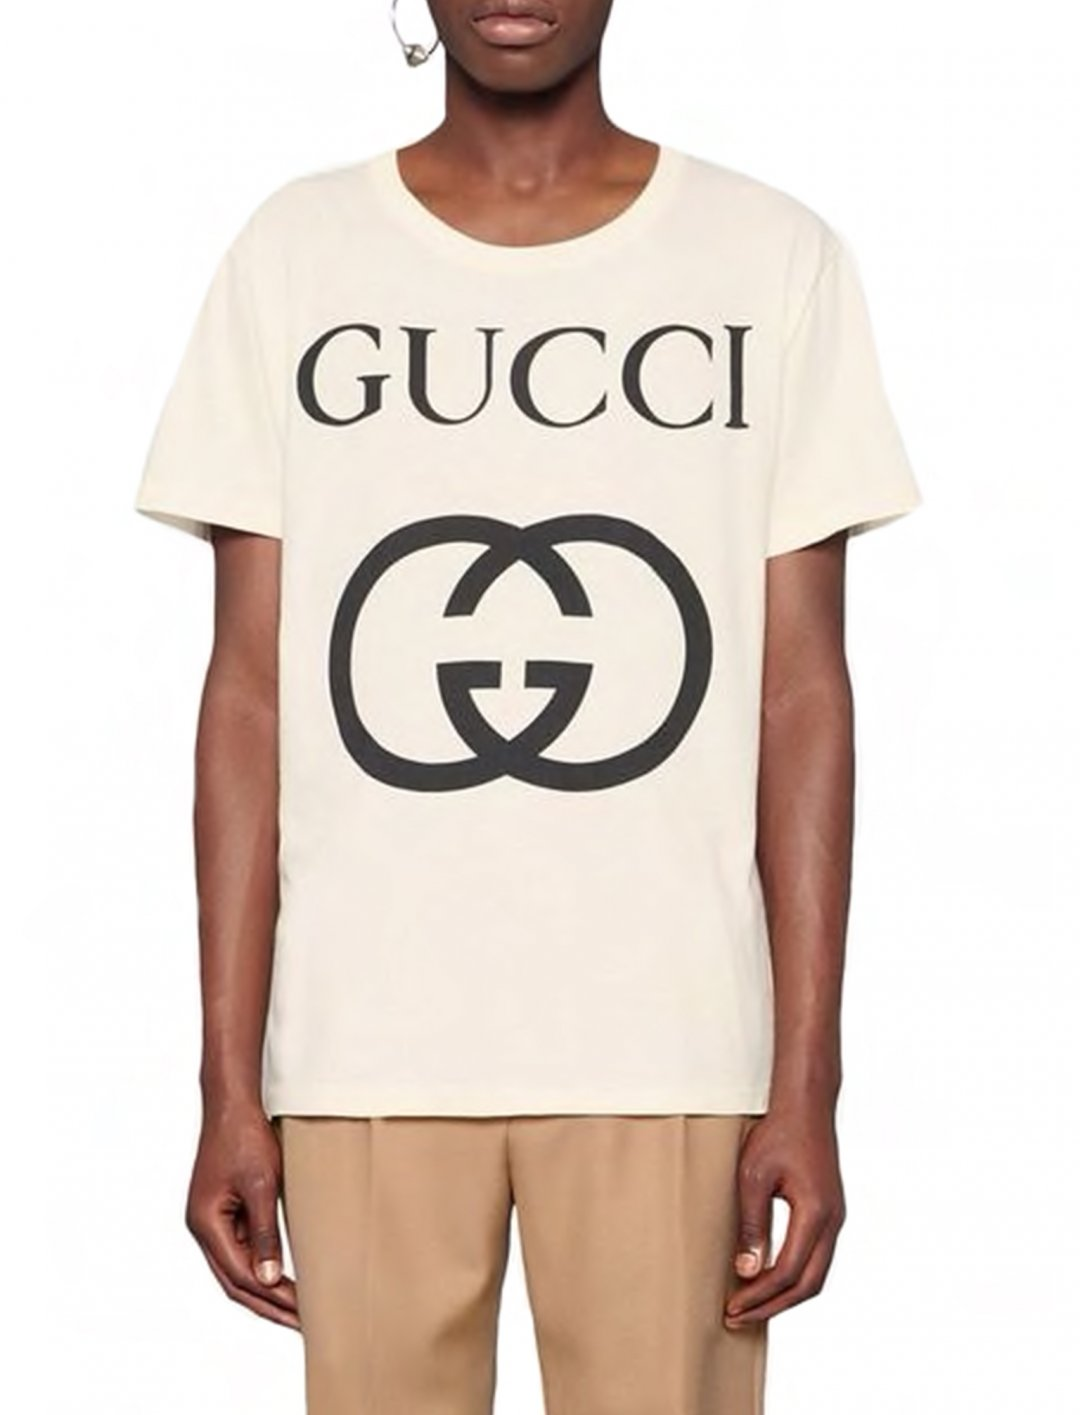 "French Montana's T-Shirt {""id"":5,""product_section_id"":1,""name"":""Clothing"",""order"":5} Gucci"